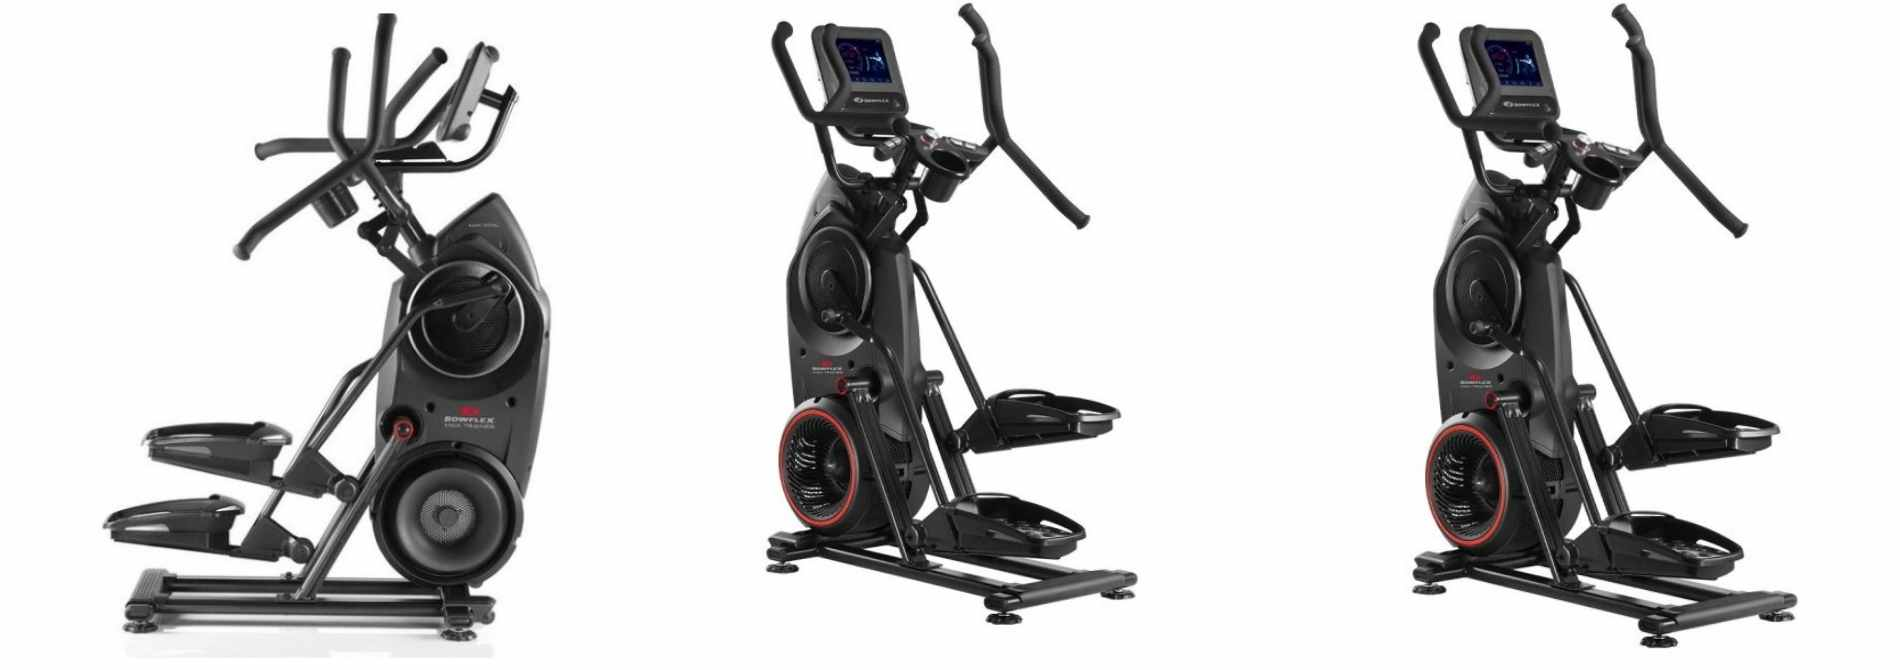 Bowflex-Max Trainer Total Overview